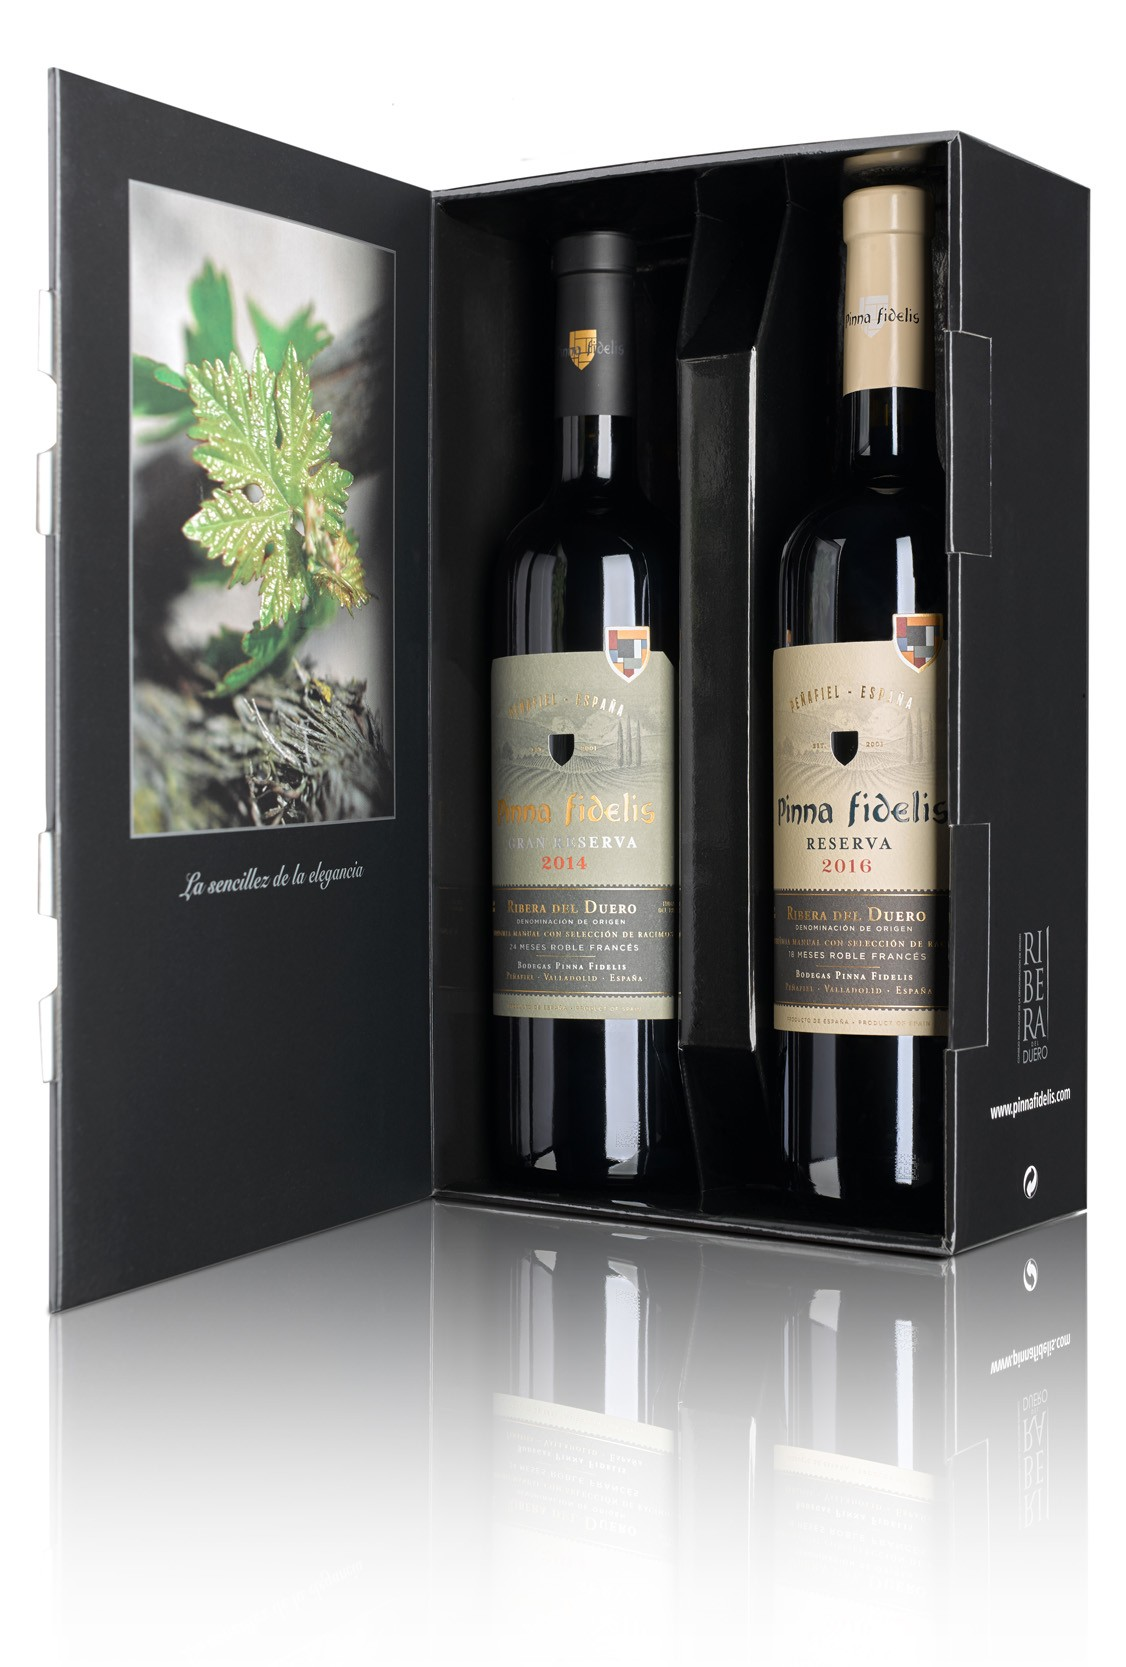 Roble Pinna Fidelis Duo pack